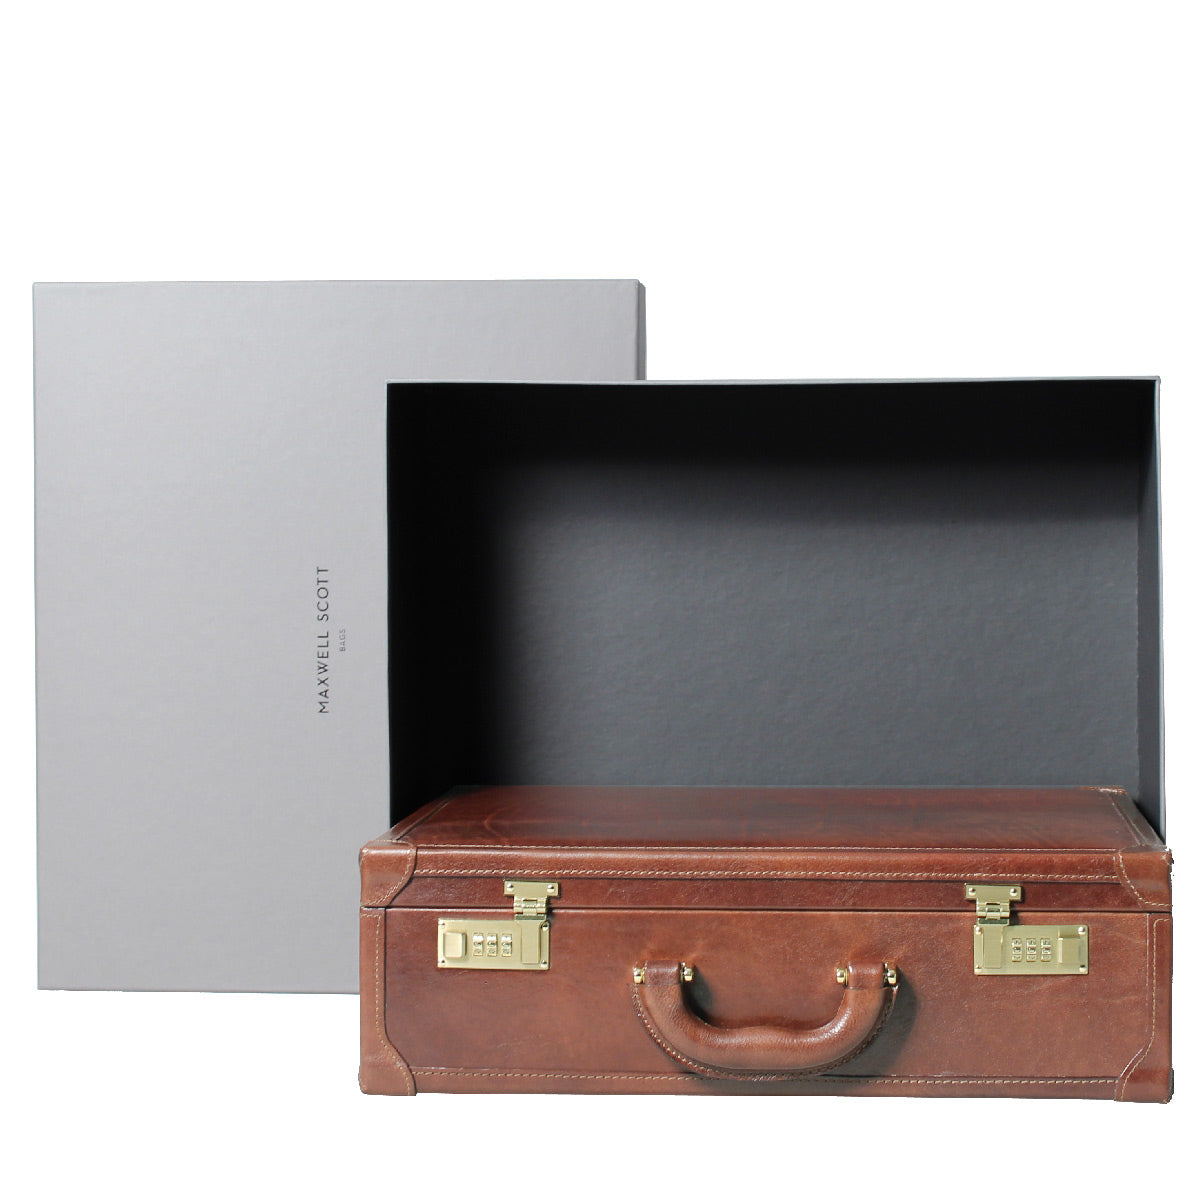 Image 7 of the 'Buroni' Black Veg-Tanned Leather Business Attaché  Case